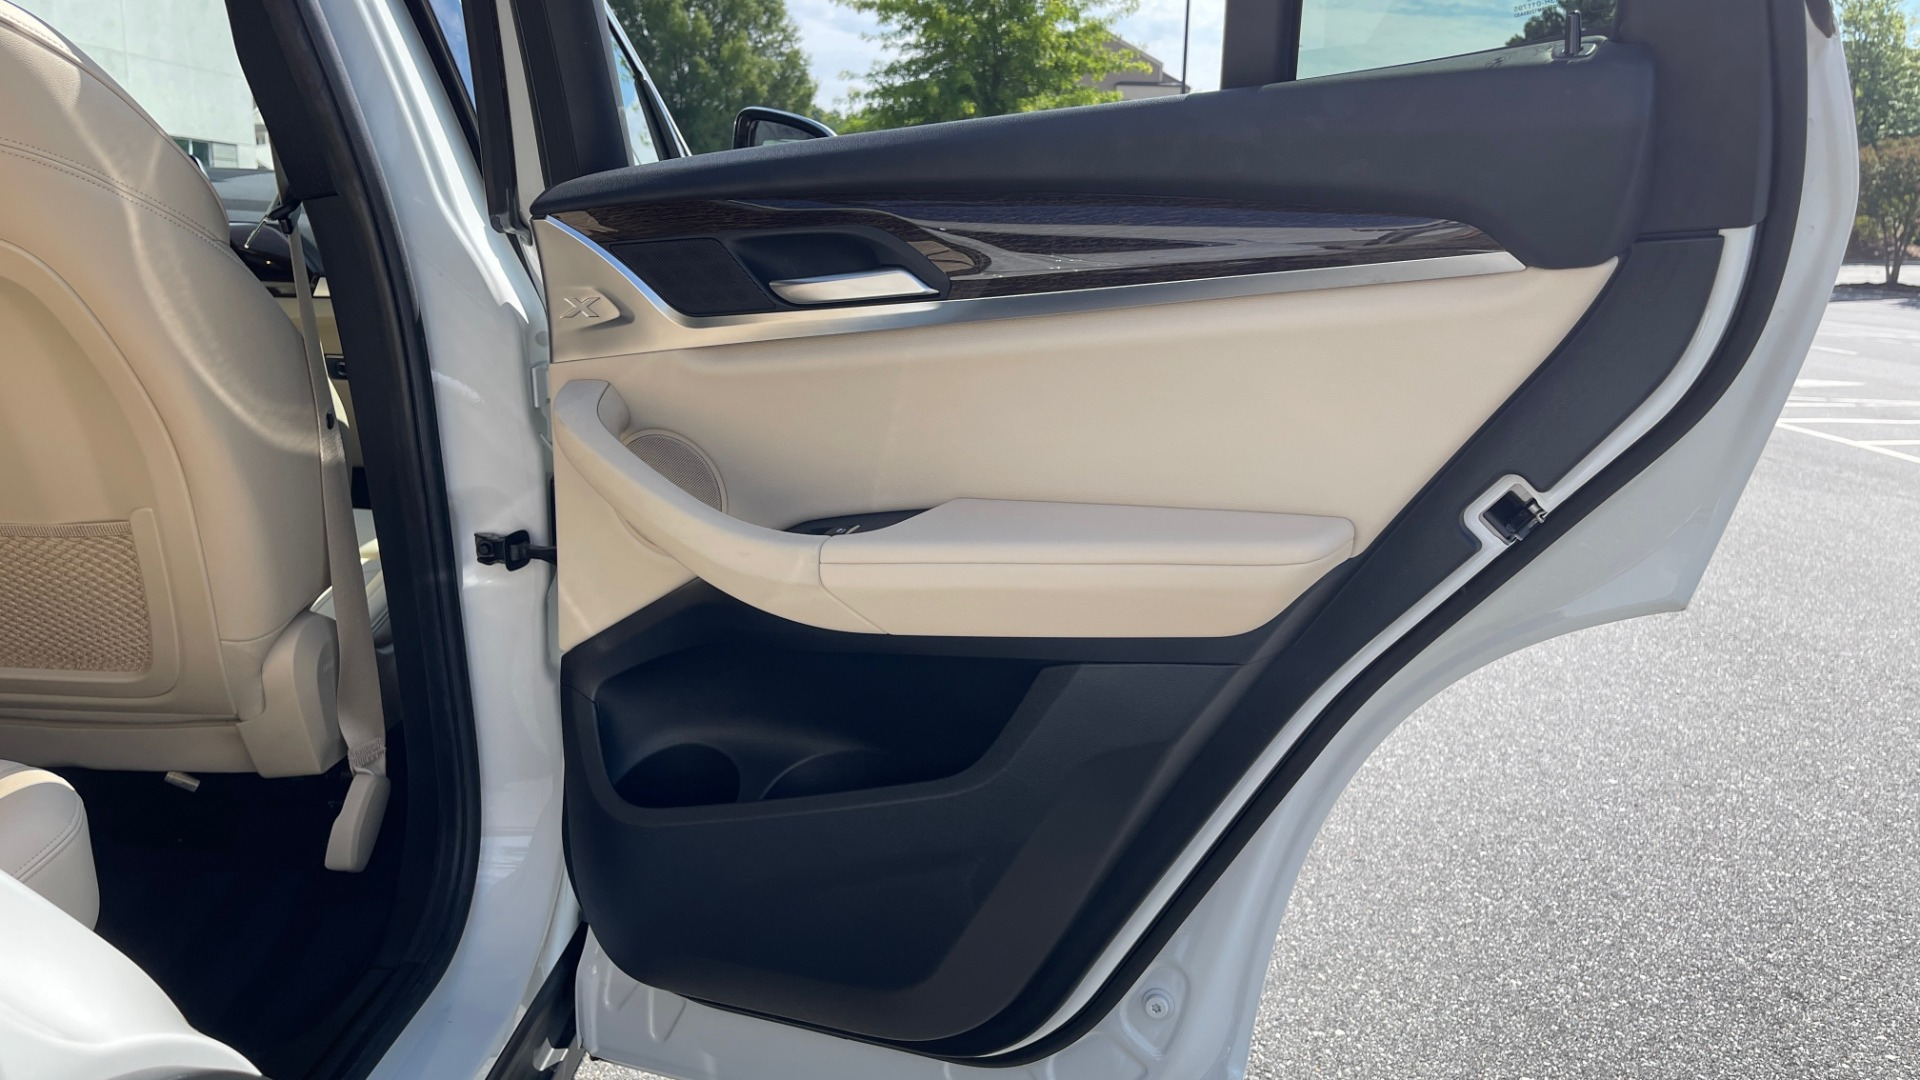 Used 2018 BMW X3 XDRIVE30I CONVENIENCE PKG / HEATED FRONT SEATS / REARVIEW for sale $36,595 at Formula Imports in Charlotte NC 28227 58